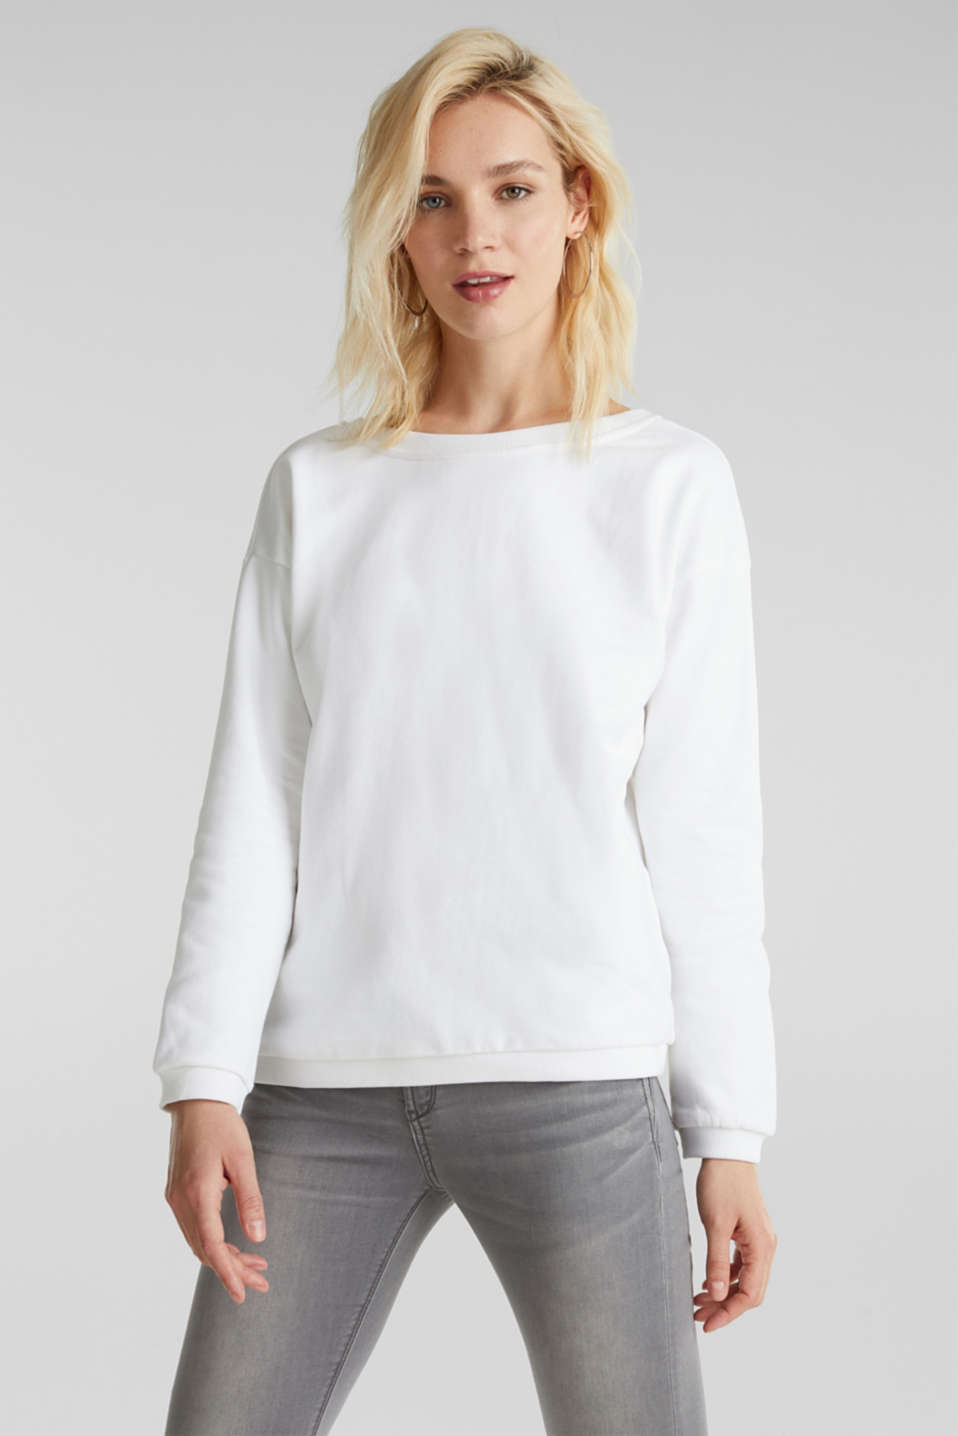 Sweatshirt with a back neckline, 100% cotton, WHITE, detail image number 0